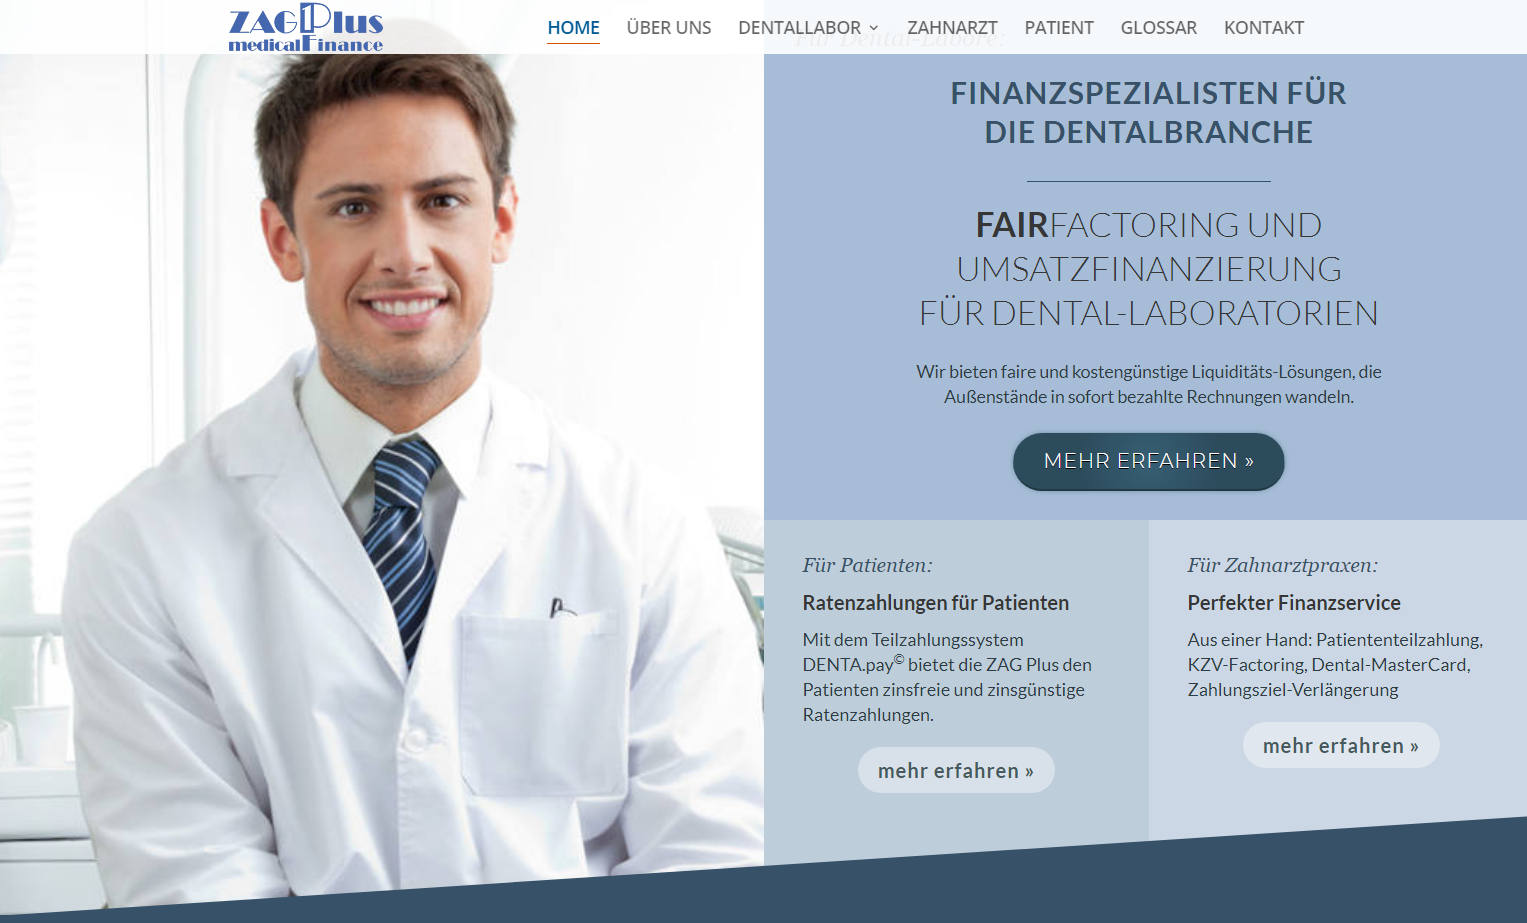 ZAG Plus medicalFinance Website Design